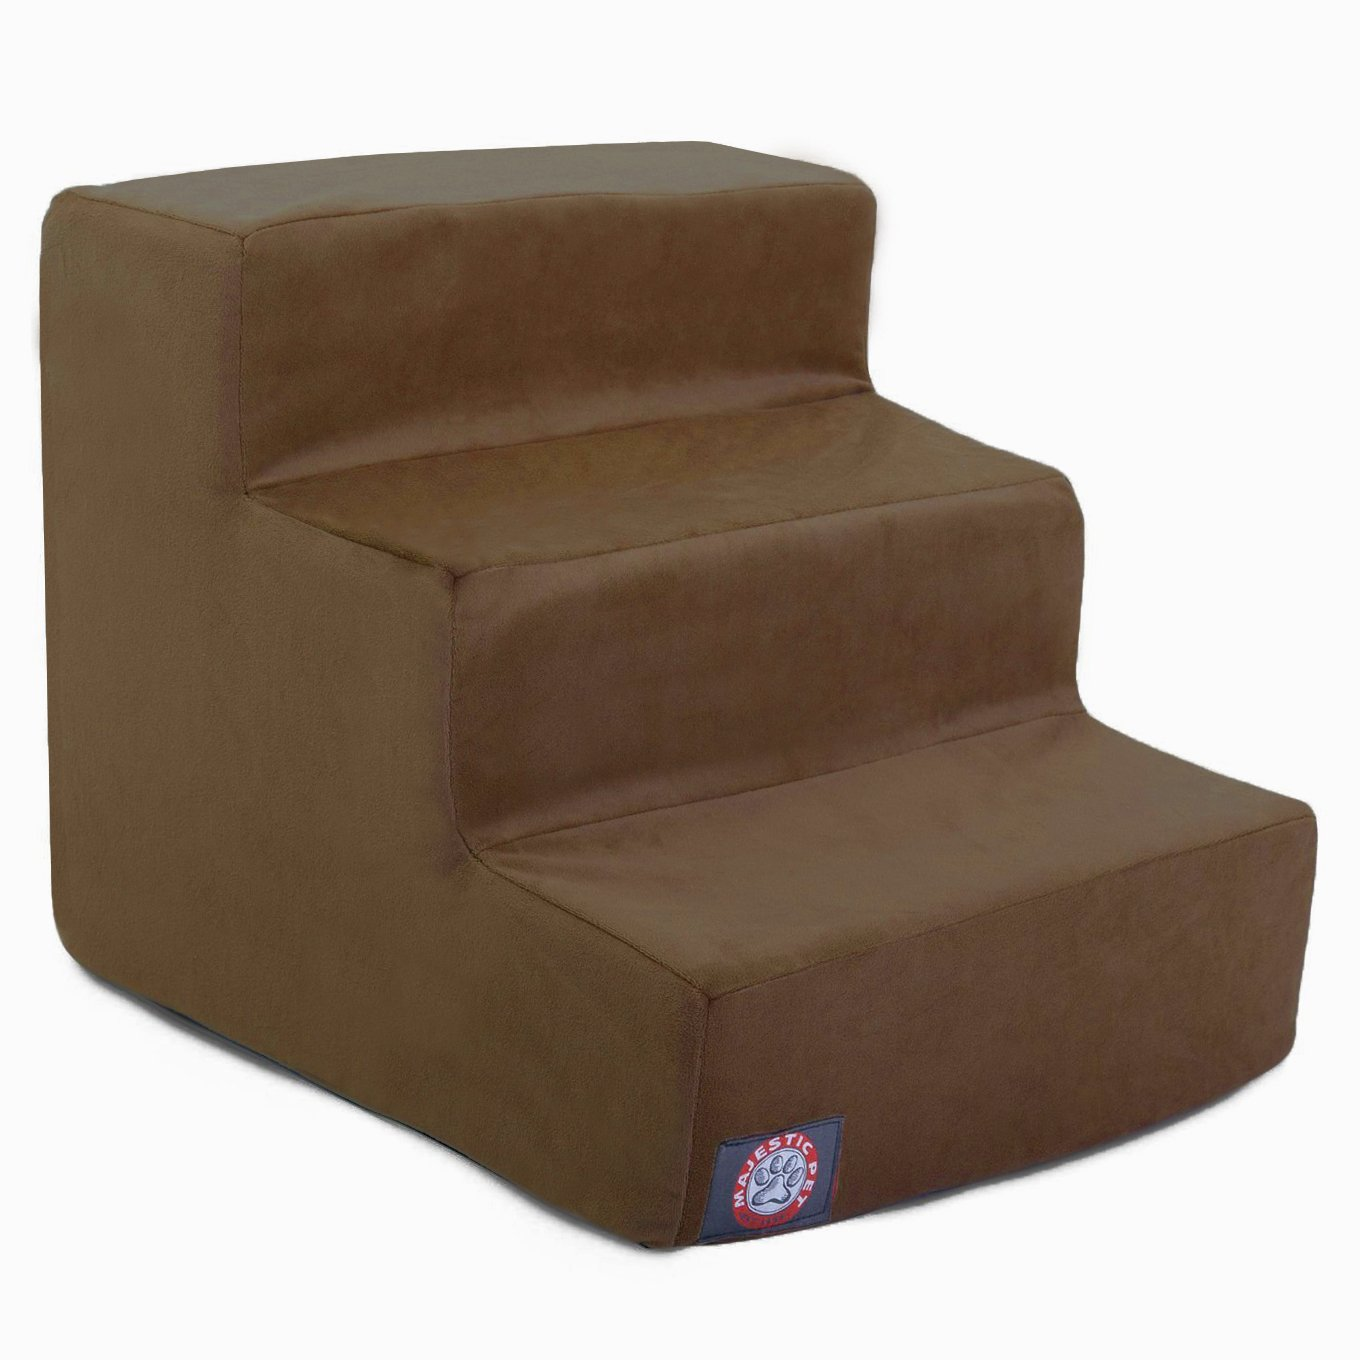 3 Step Chocolate Brown Suede Pet Stairs By Majestic Pet Products